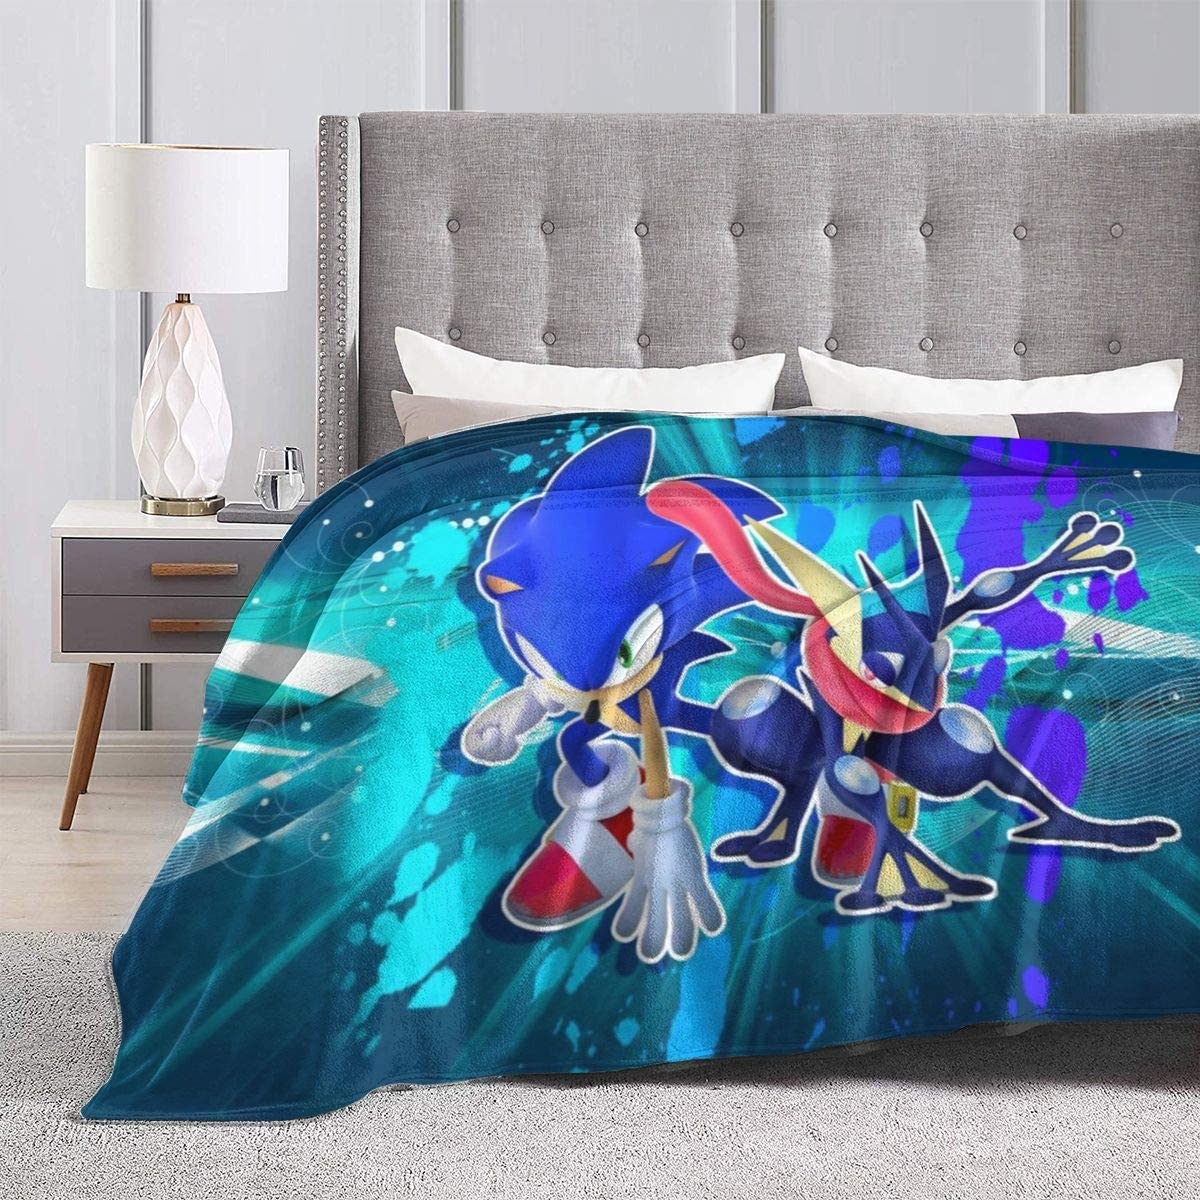 Sonic The Hedgehog Blanket Plush Soft Warm Fuzzy Sofa Bed Blankets for Kids Adult All Season 40 X 50 Inch